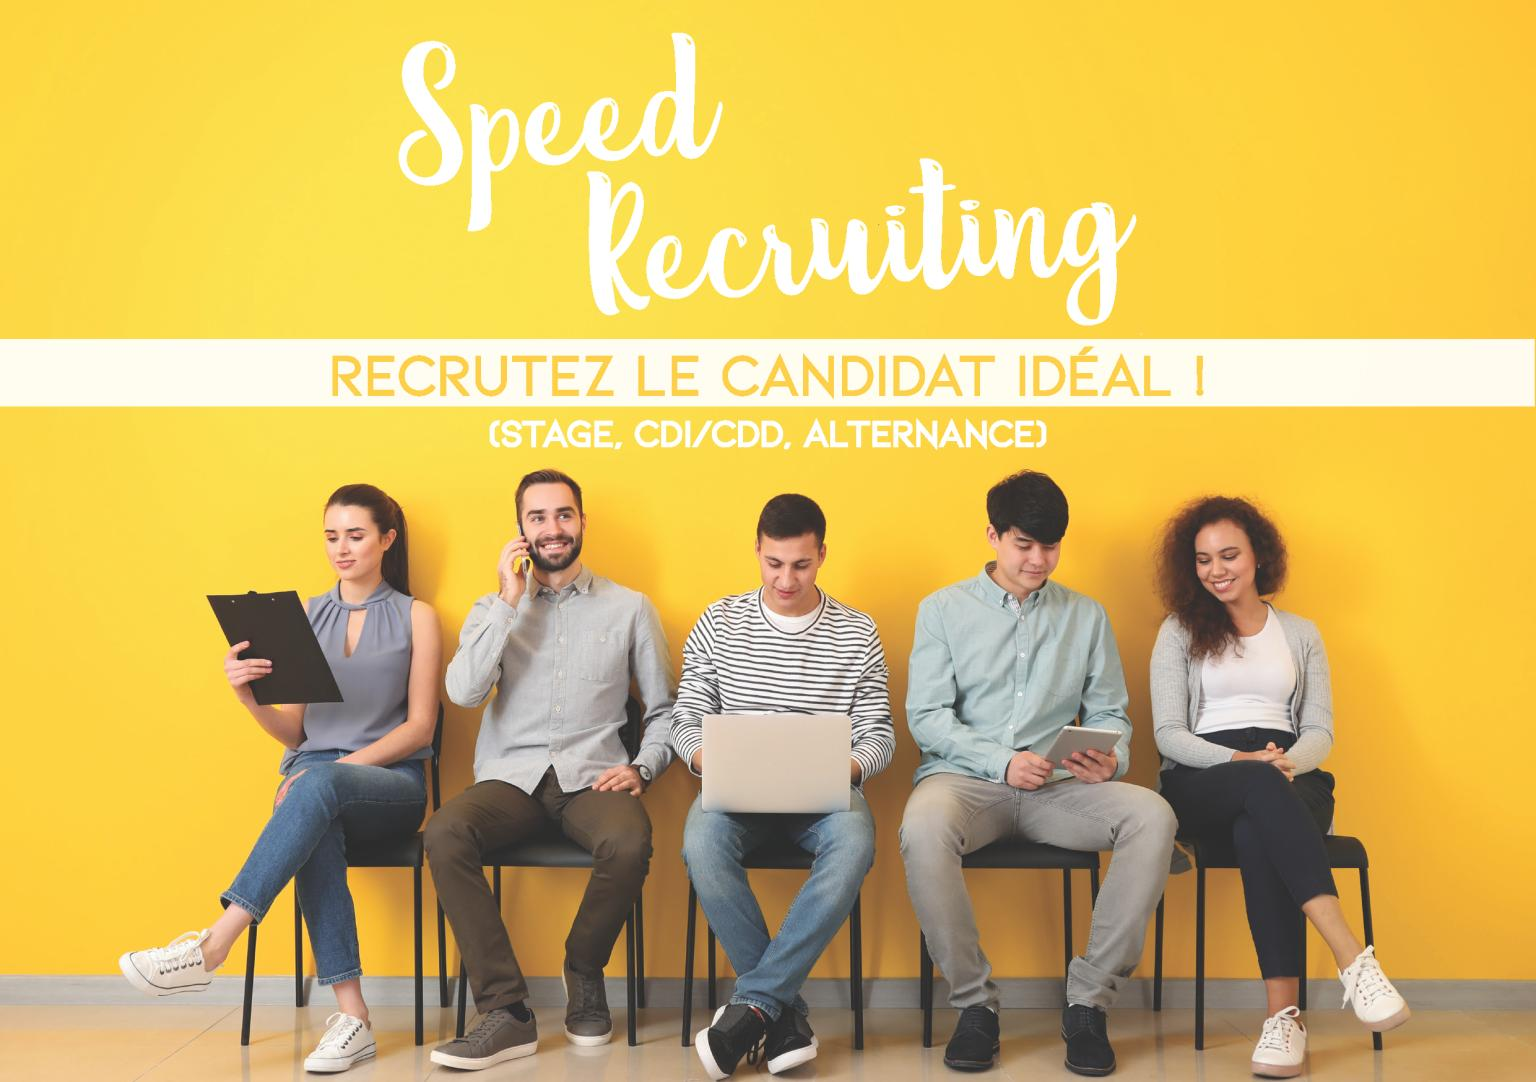 image-speed-recruiting-etudiant-